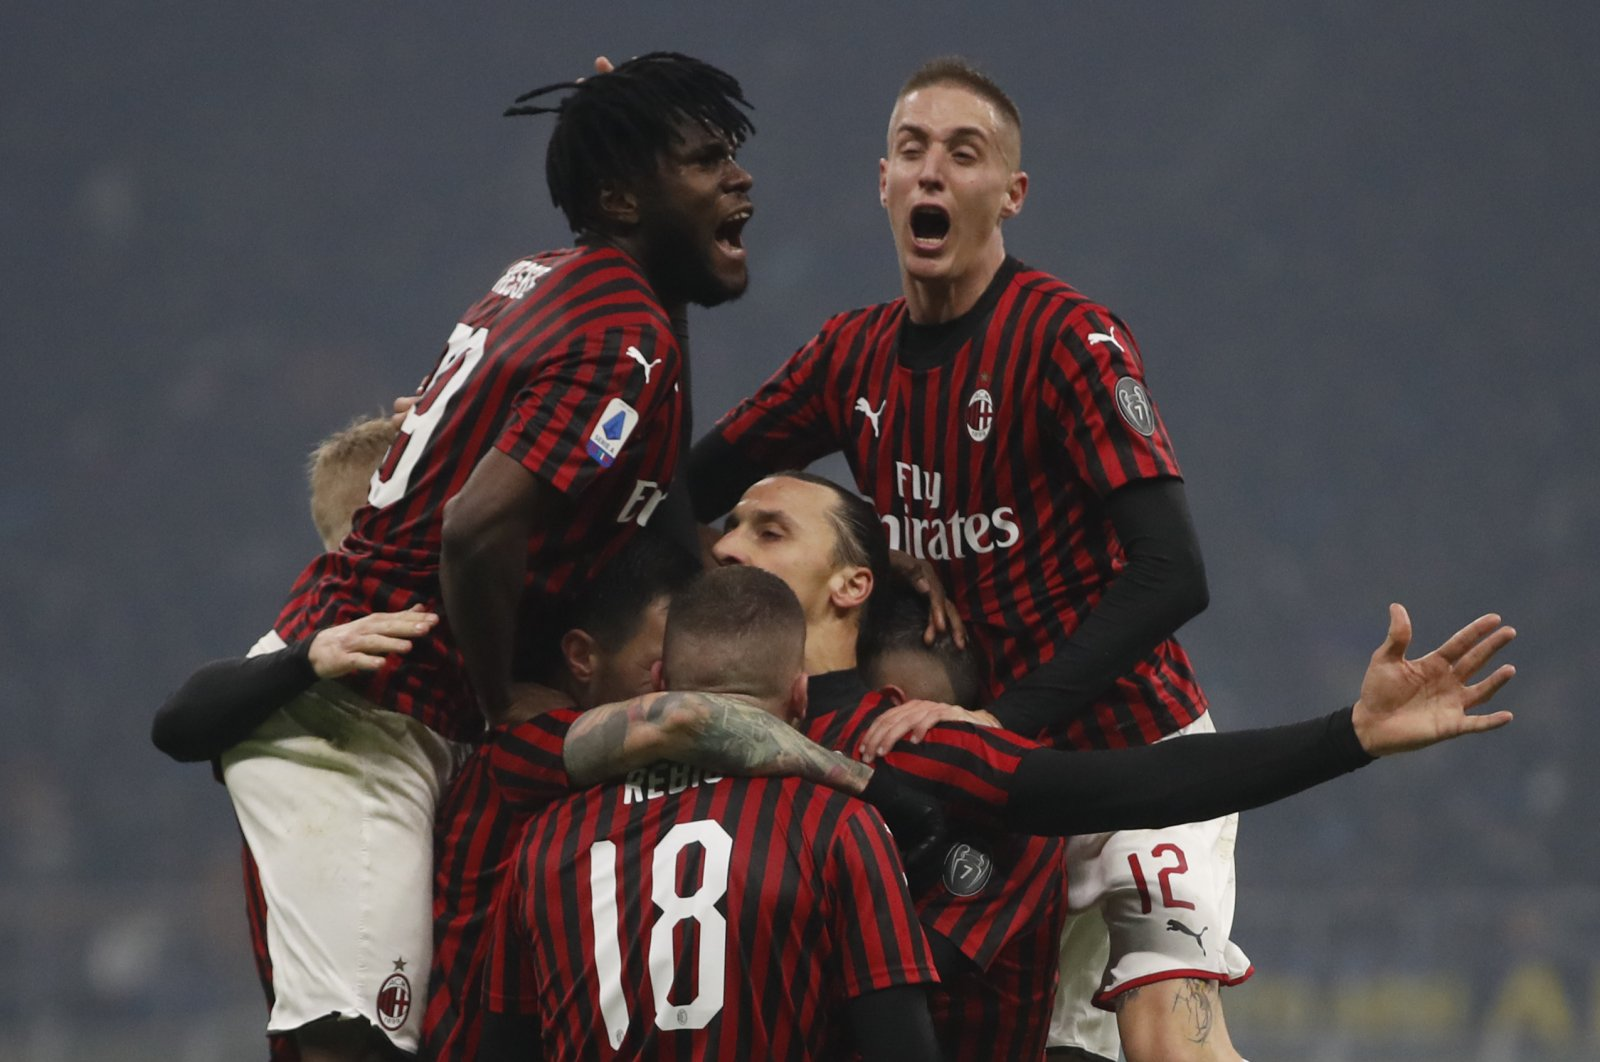 AC Milan's Zlatan Ibrahimovic (C) celebrates with his teammates after scoring his side's second goal during the Serie A match against Inter Milan, in Milan, Italy, Feb. 9, 2020. (AP Photo)